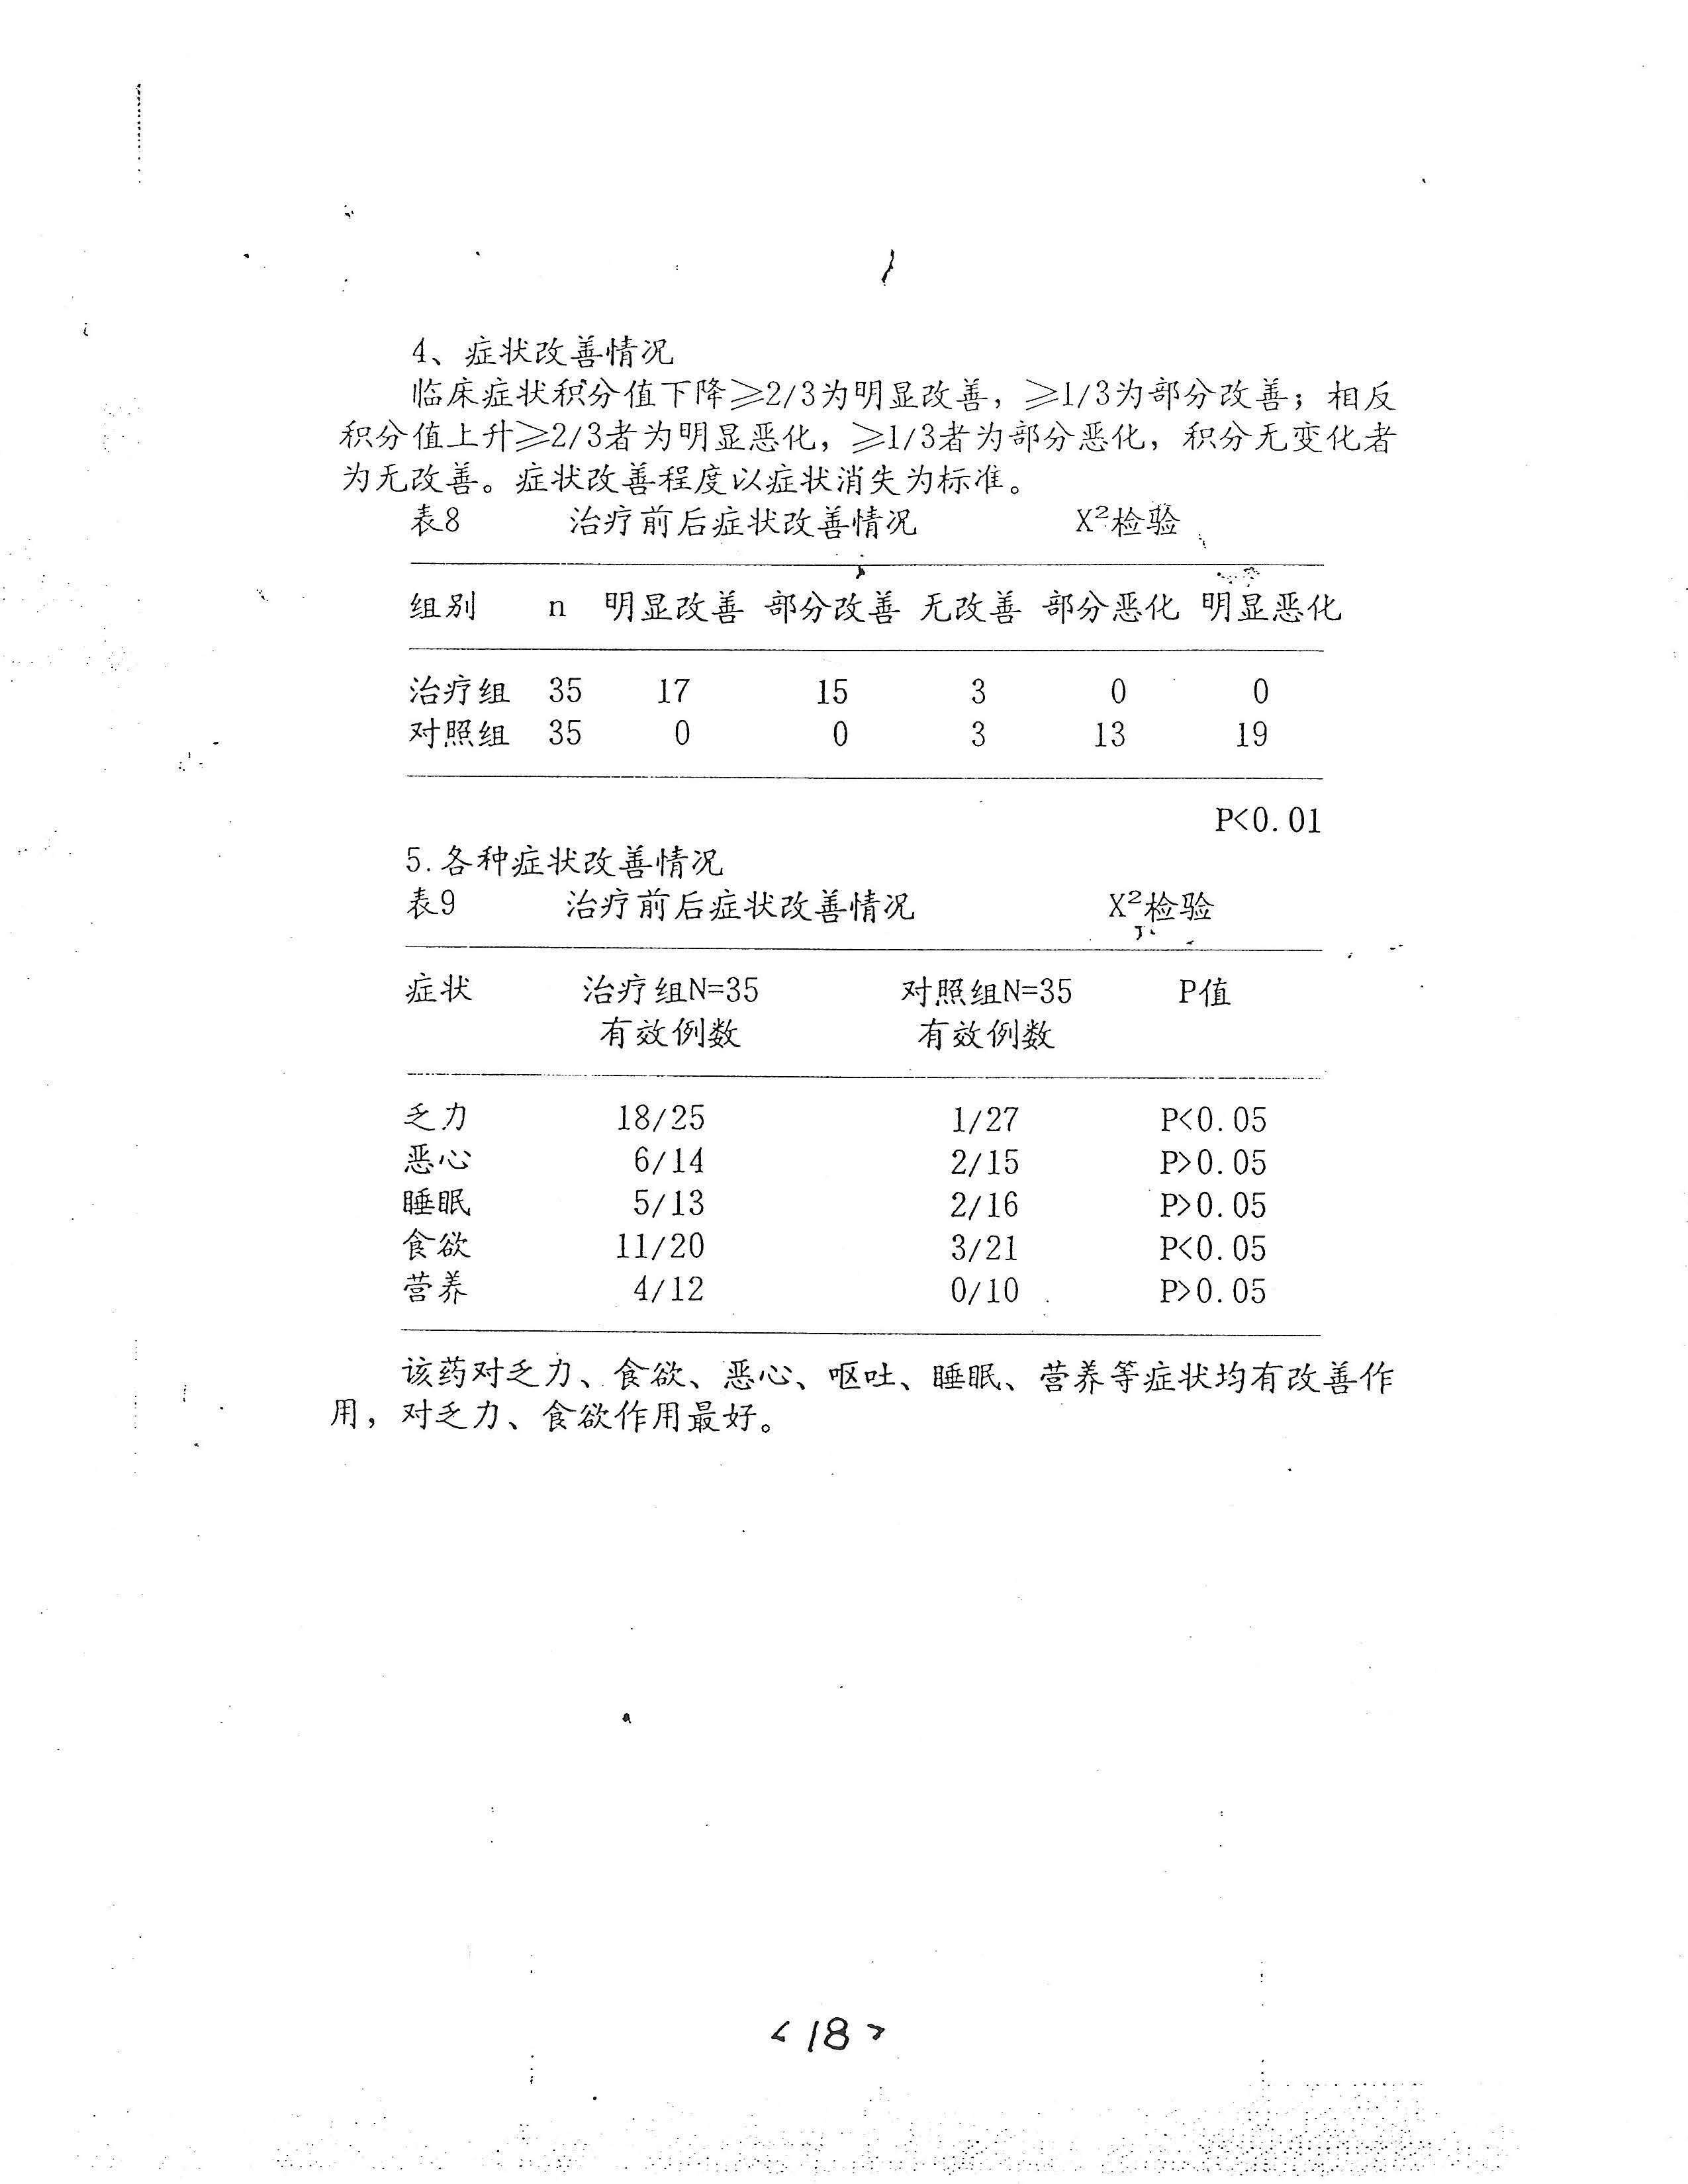 clinical_Page_20